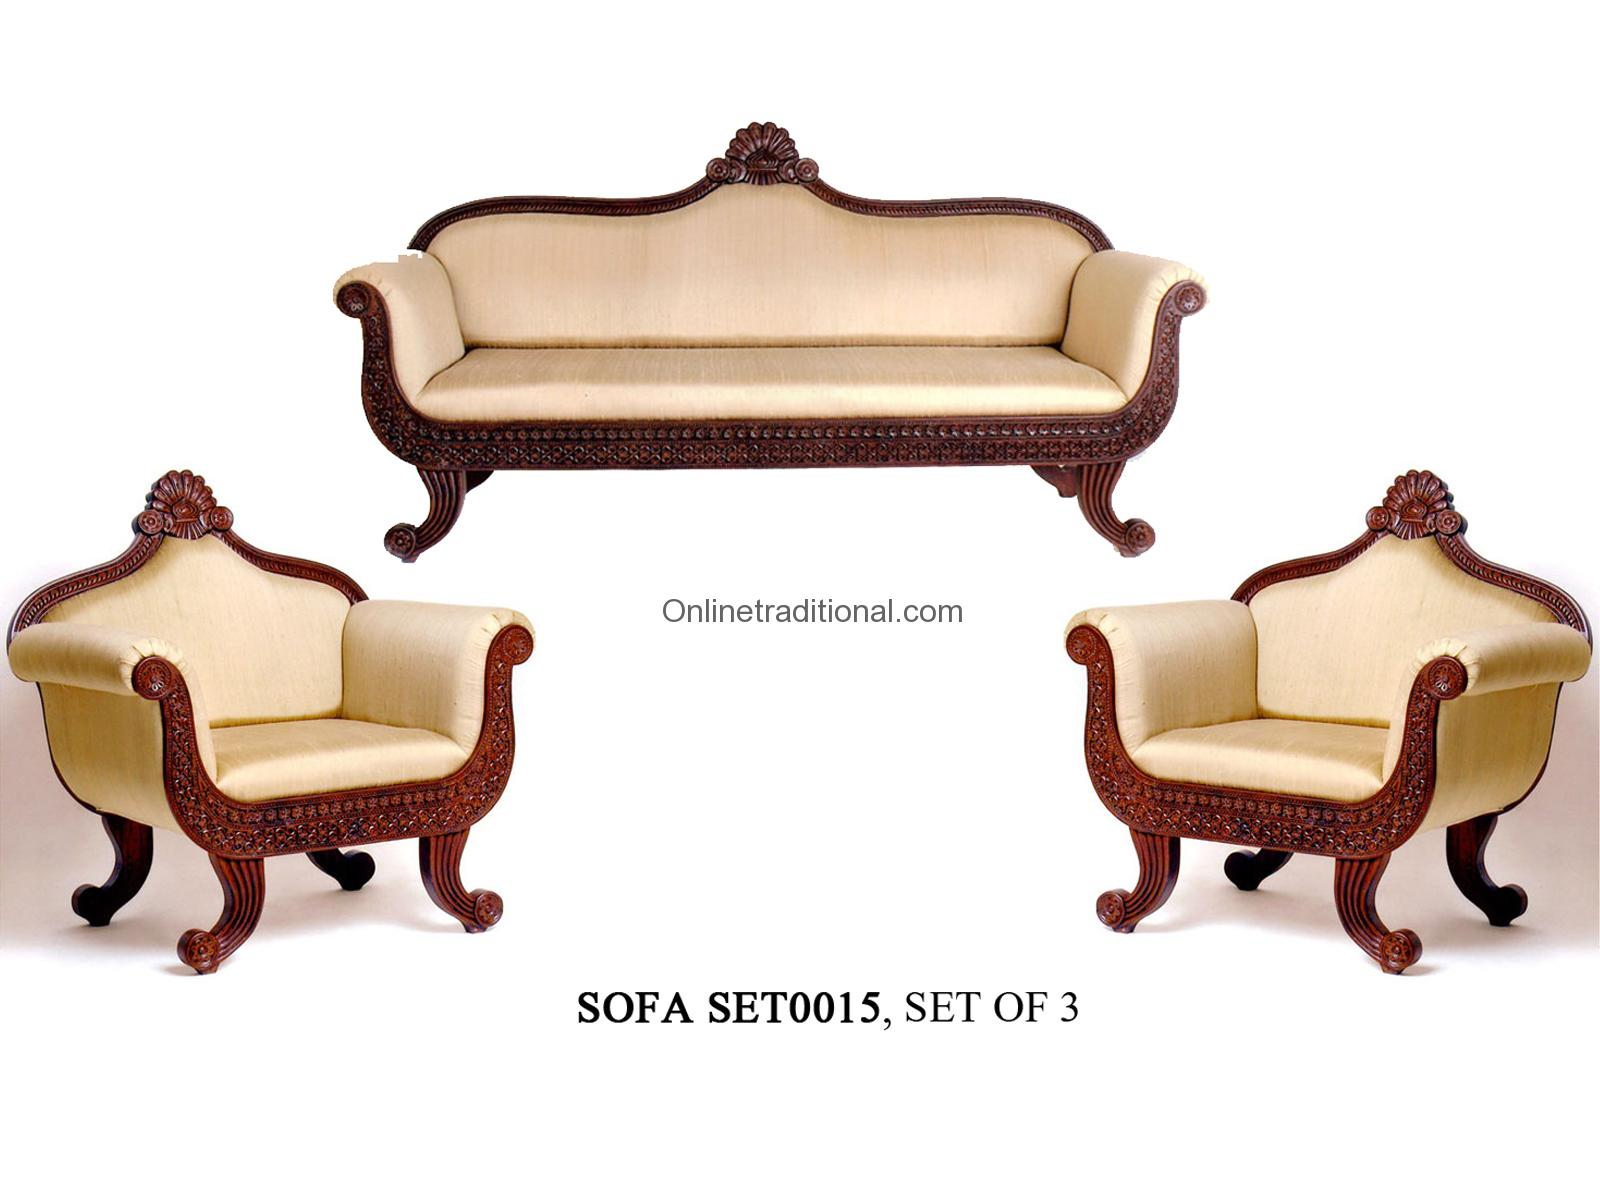 Teak Wood Sofa Sets Traditional amp Carving Sofa Sets  : Sofa Set 015 from www.pearlhandicrafts.com size 1600 x 1200 jpeg 131kB